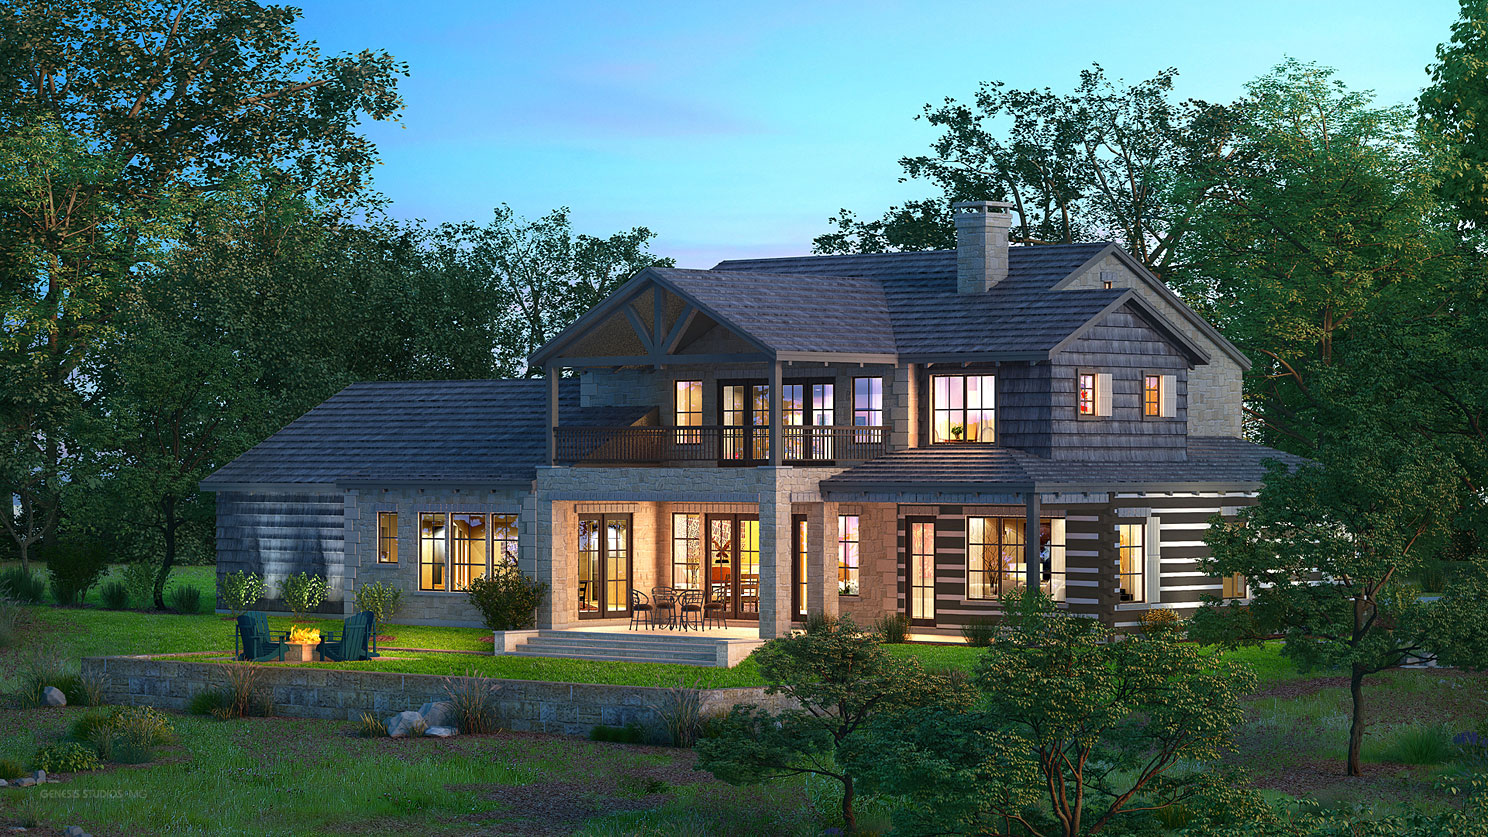 616056 Digital Photorealistic Architectural Renderings of Boot Ranch Villas Baron Country Home Backyard for Wheelock Communities